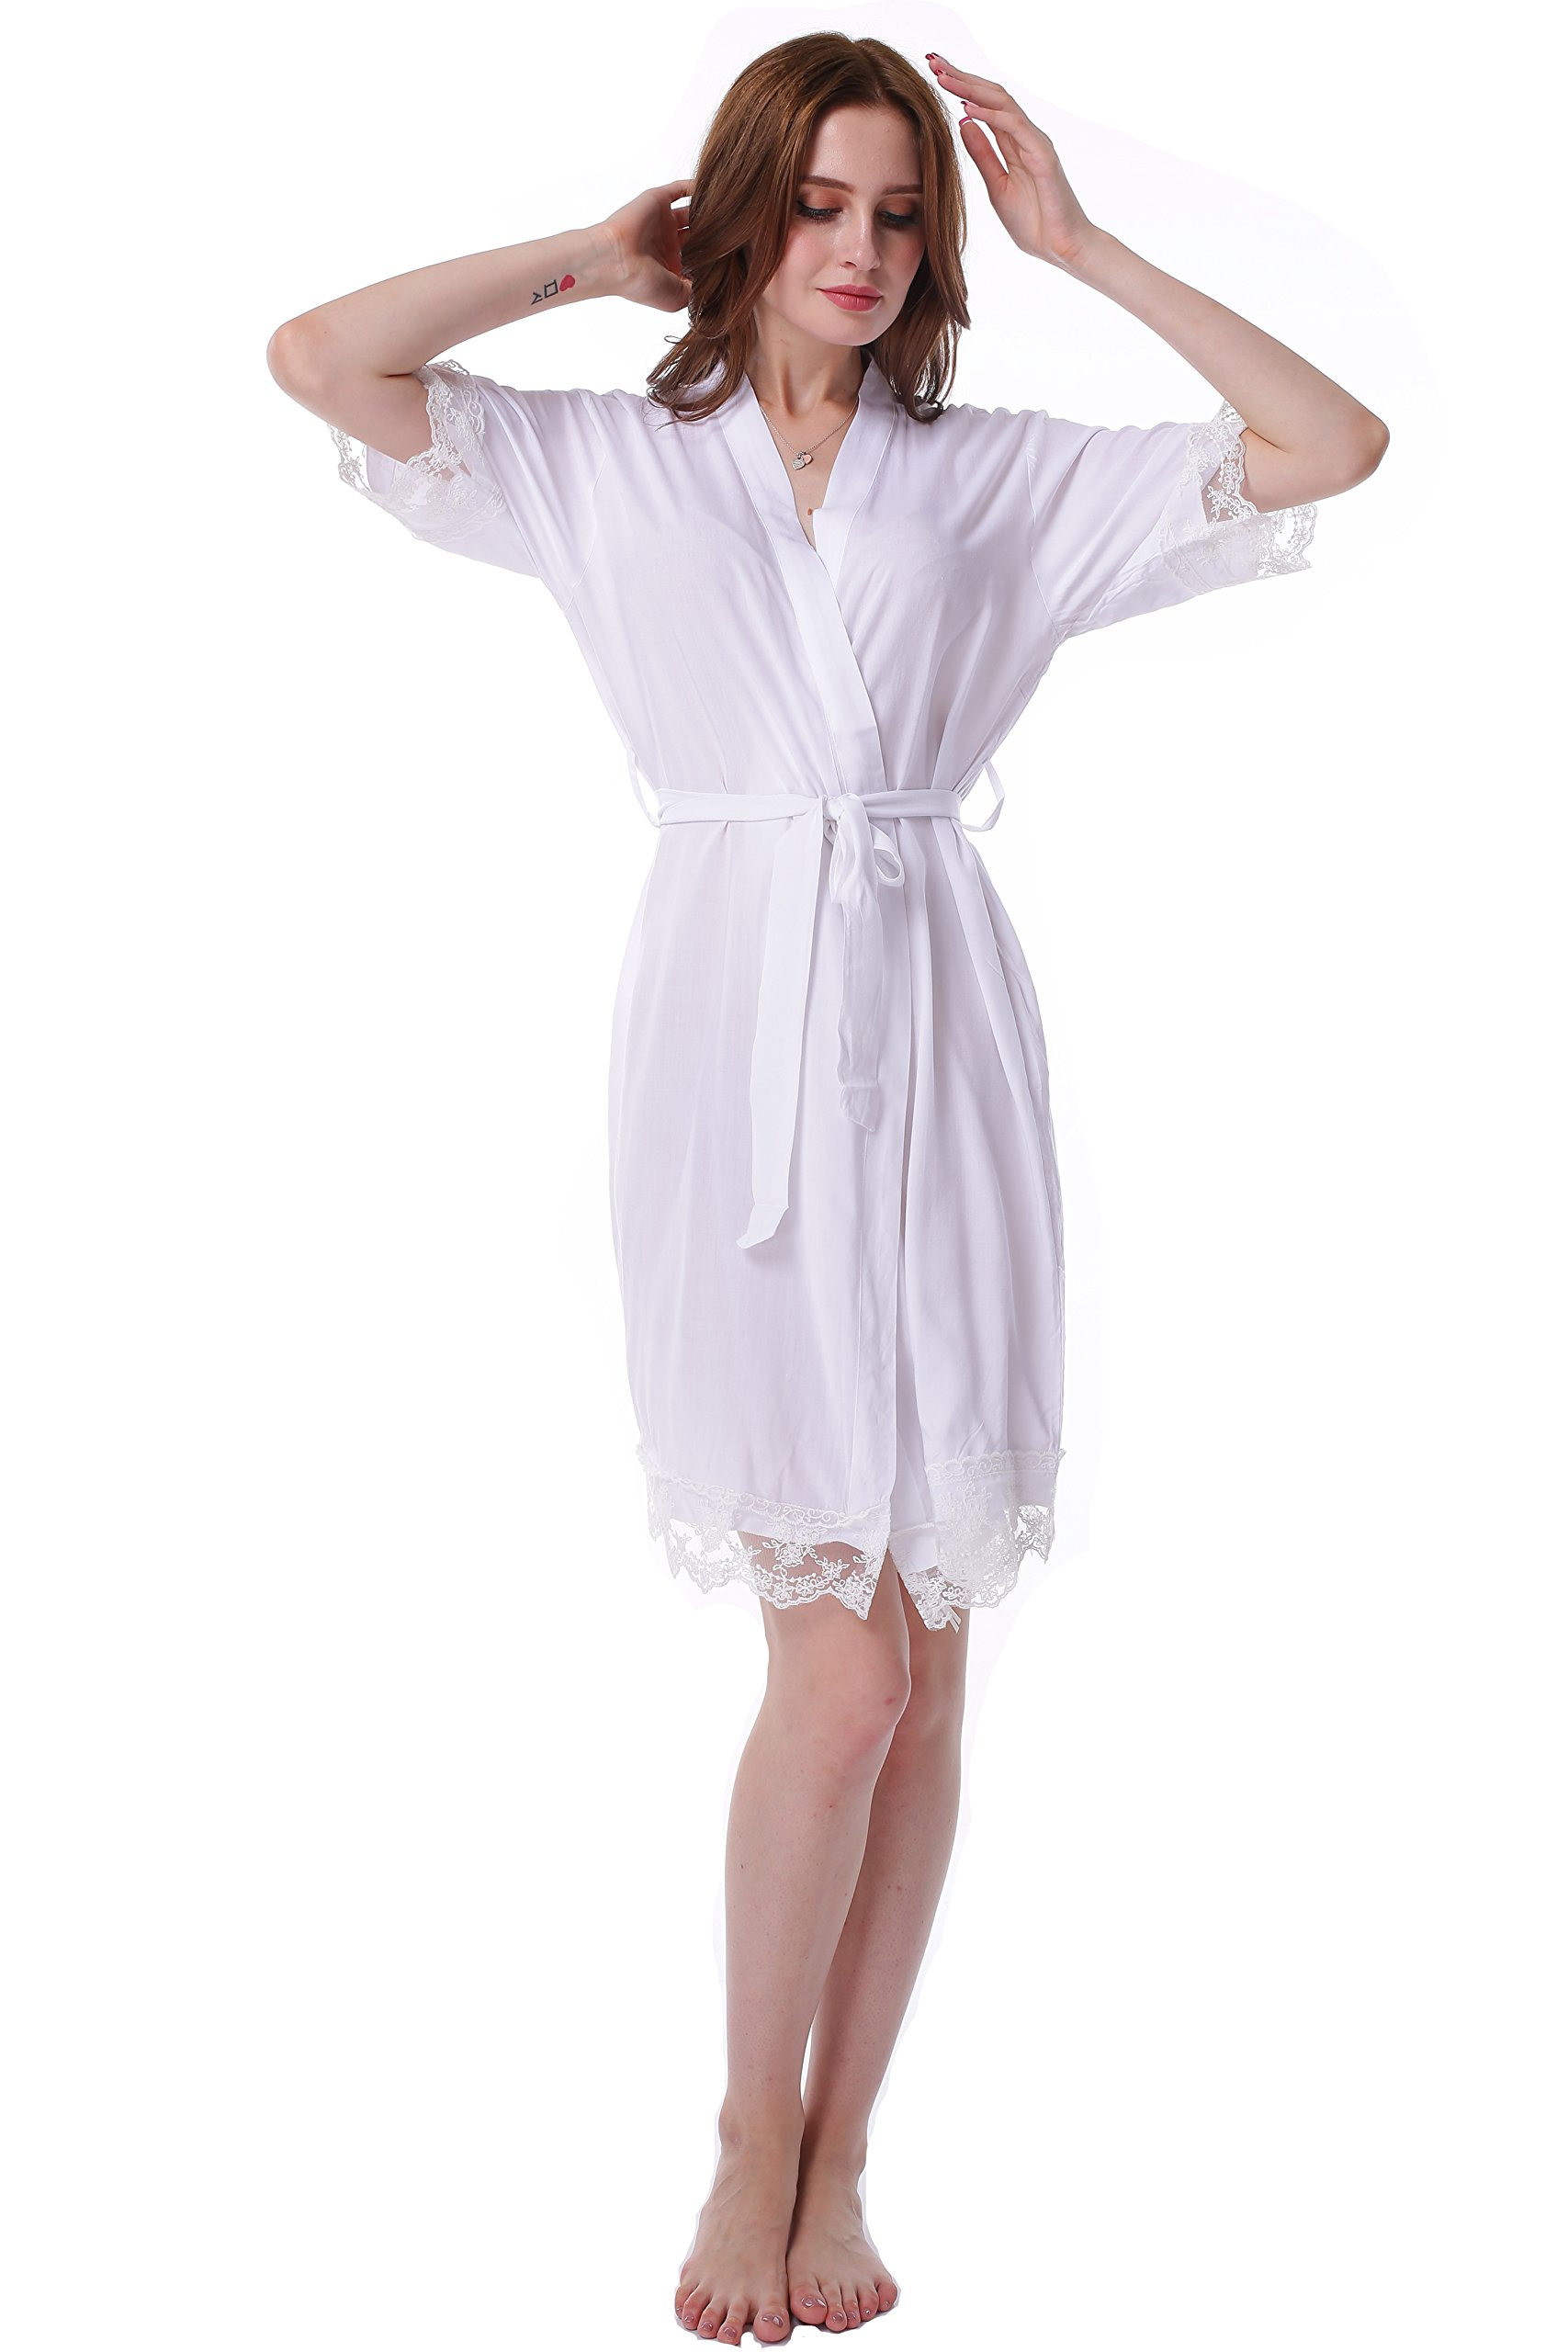 Juntian Robes Lace Cotton for Women's Bridesmaid and Bride Wedding Robes Bridal Party Robes and Short Sleeves Robes